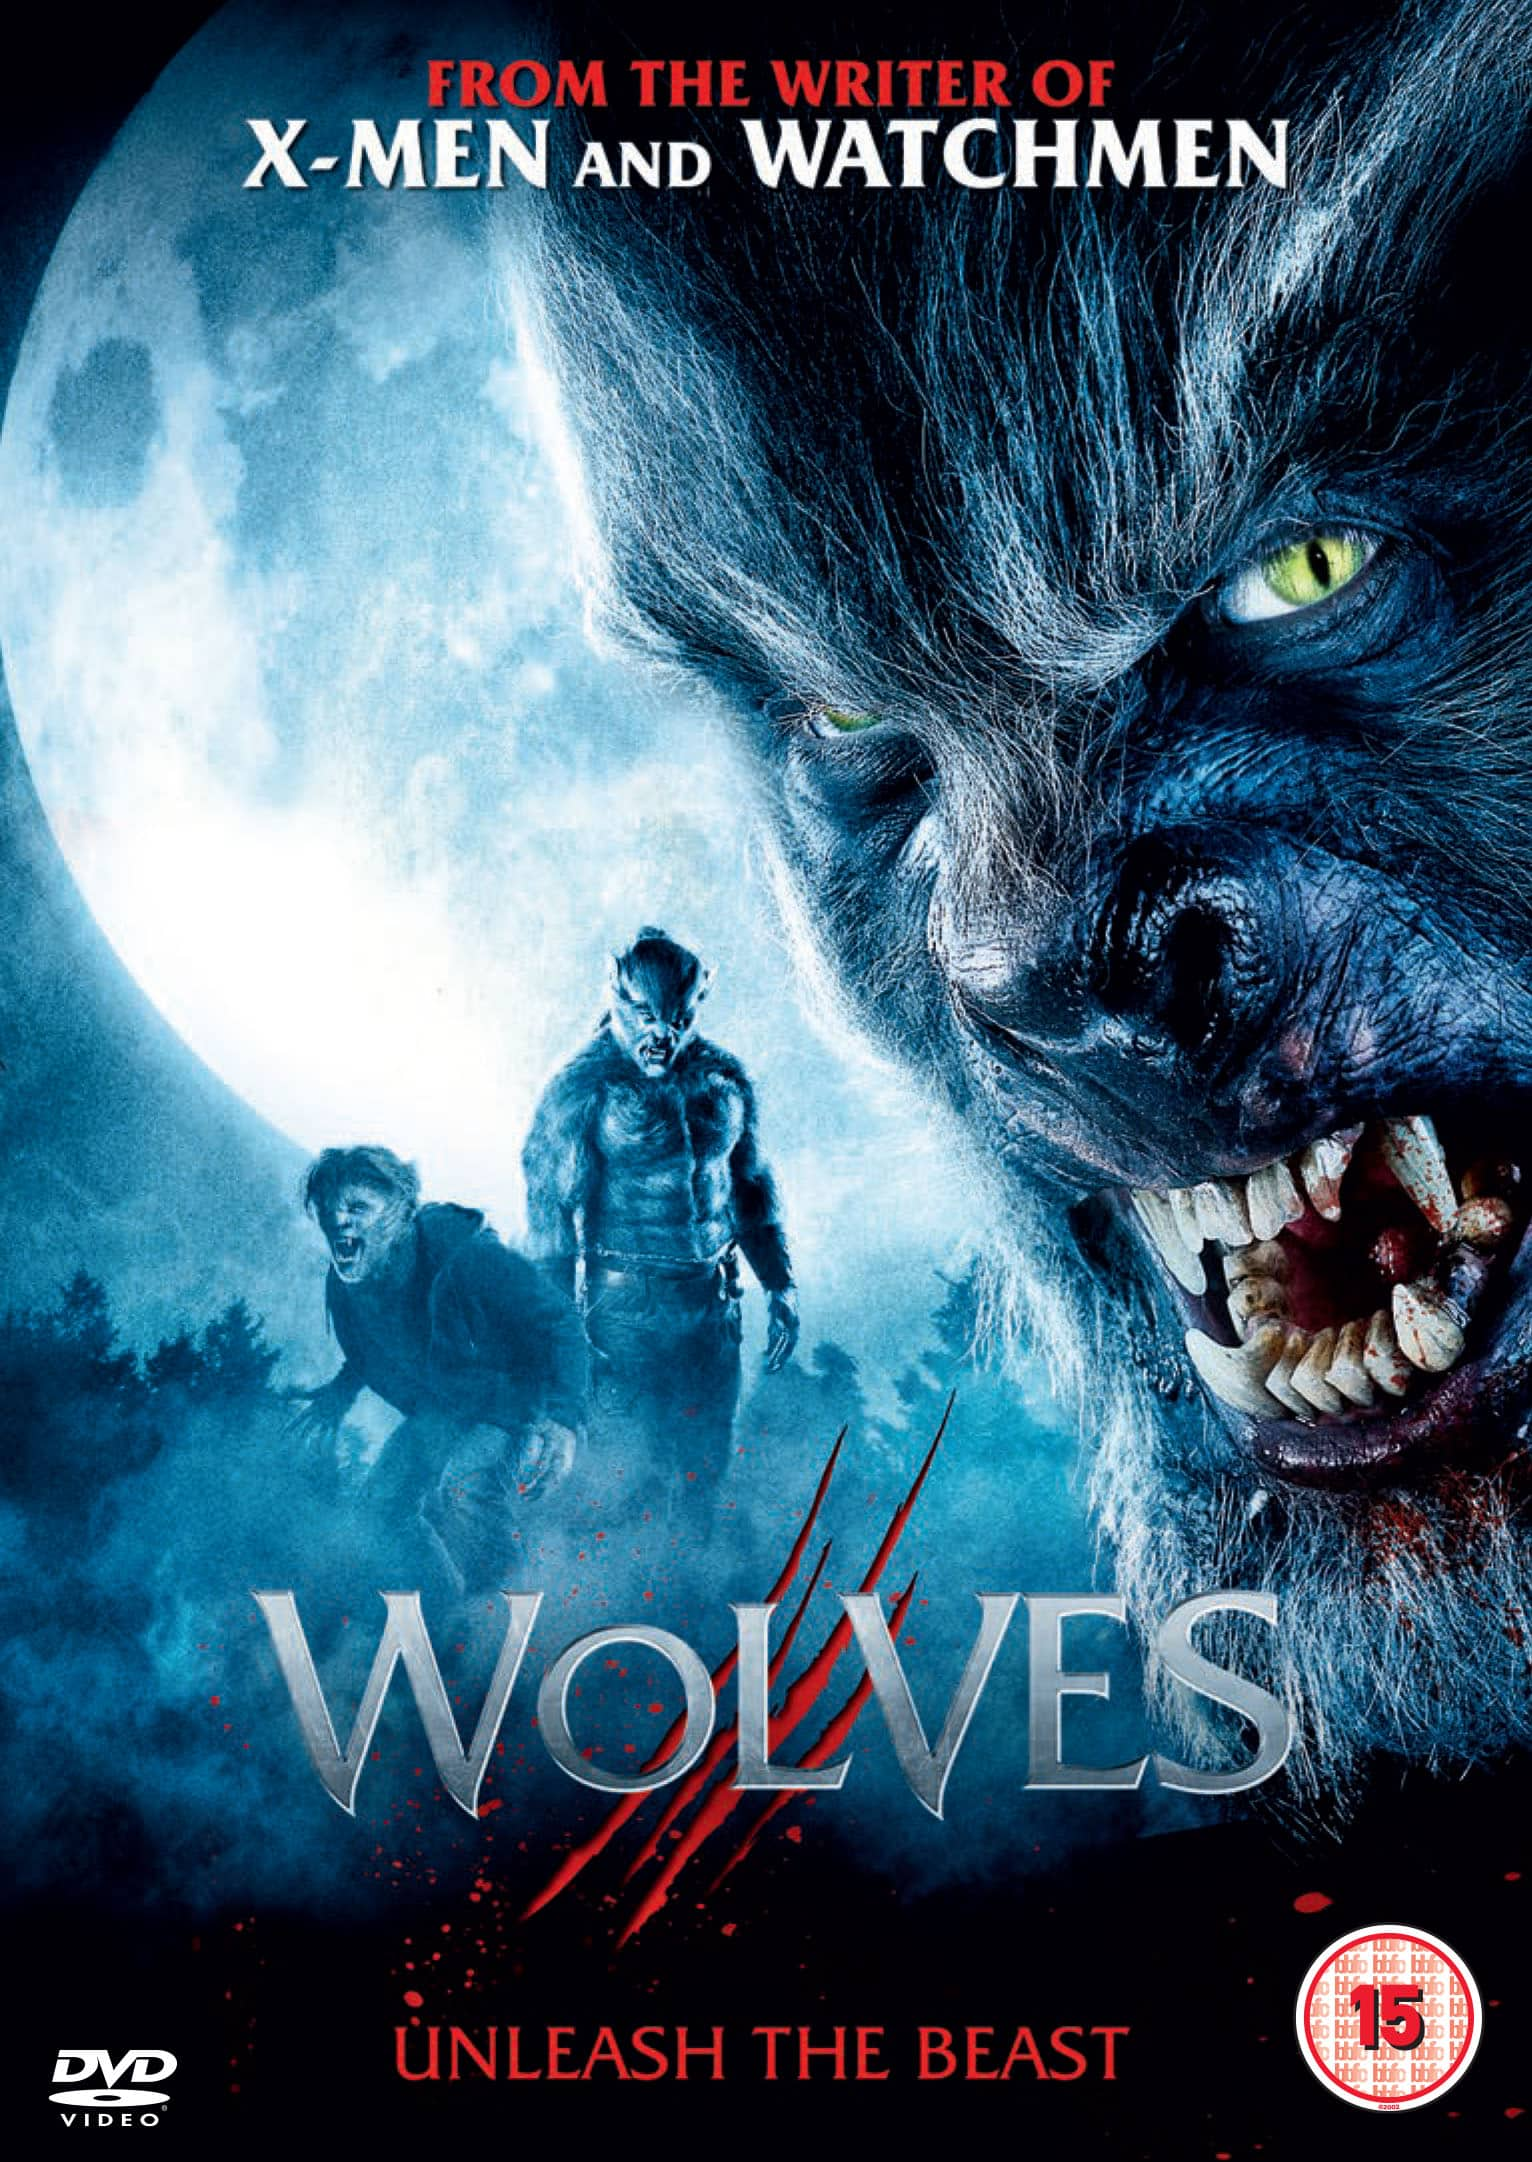 WOLVES Competition Image - UK Exclusive: Wolves Gag Reel Serves Up a Few Howlers